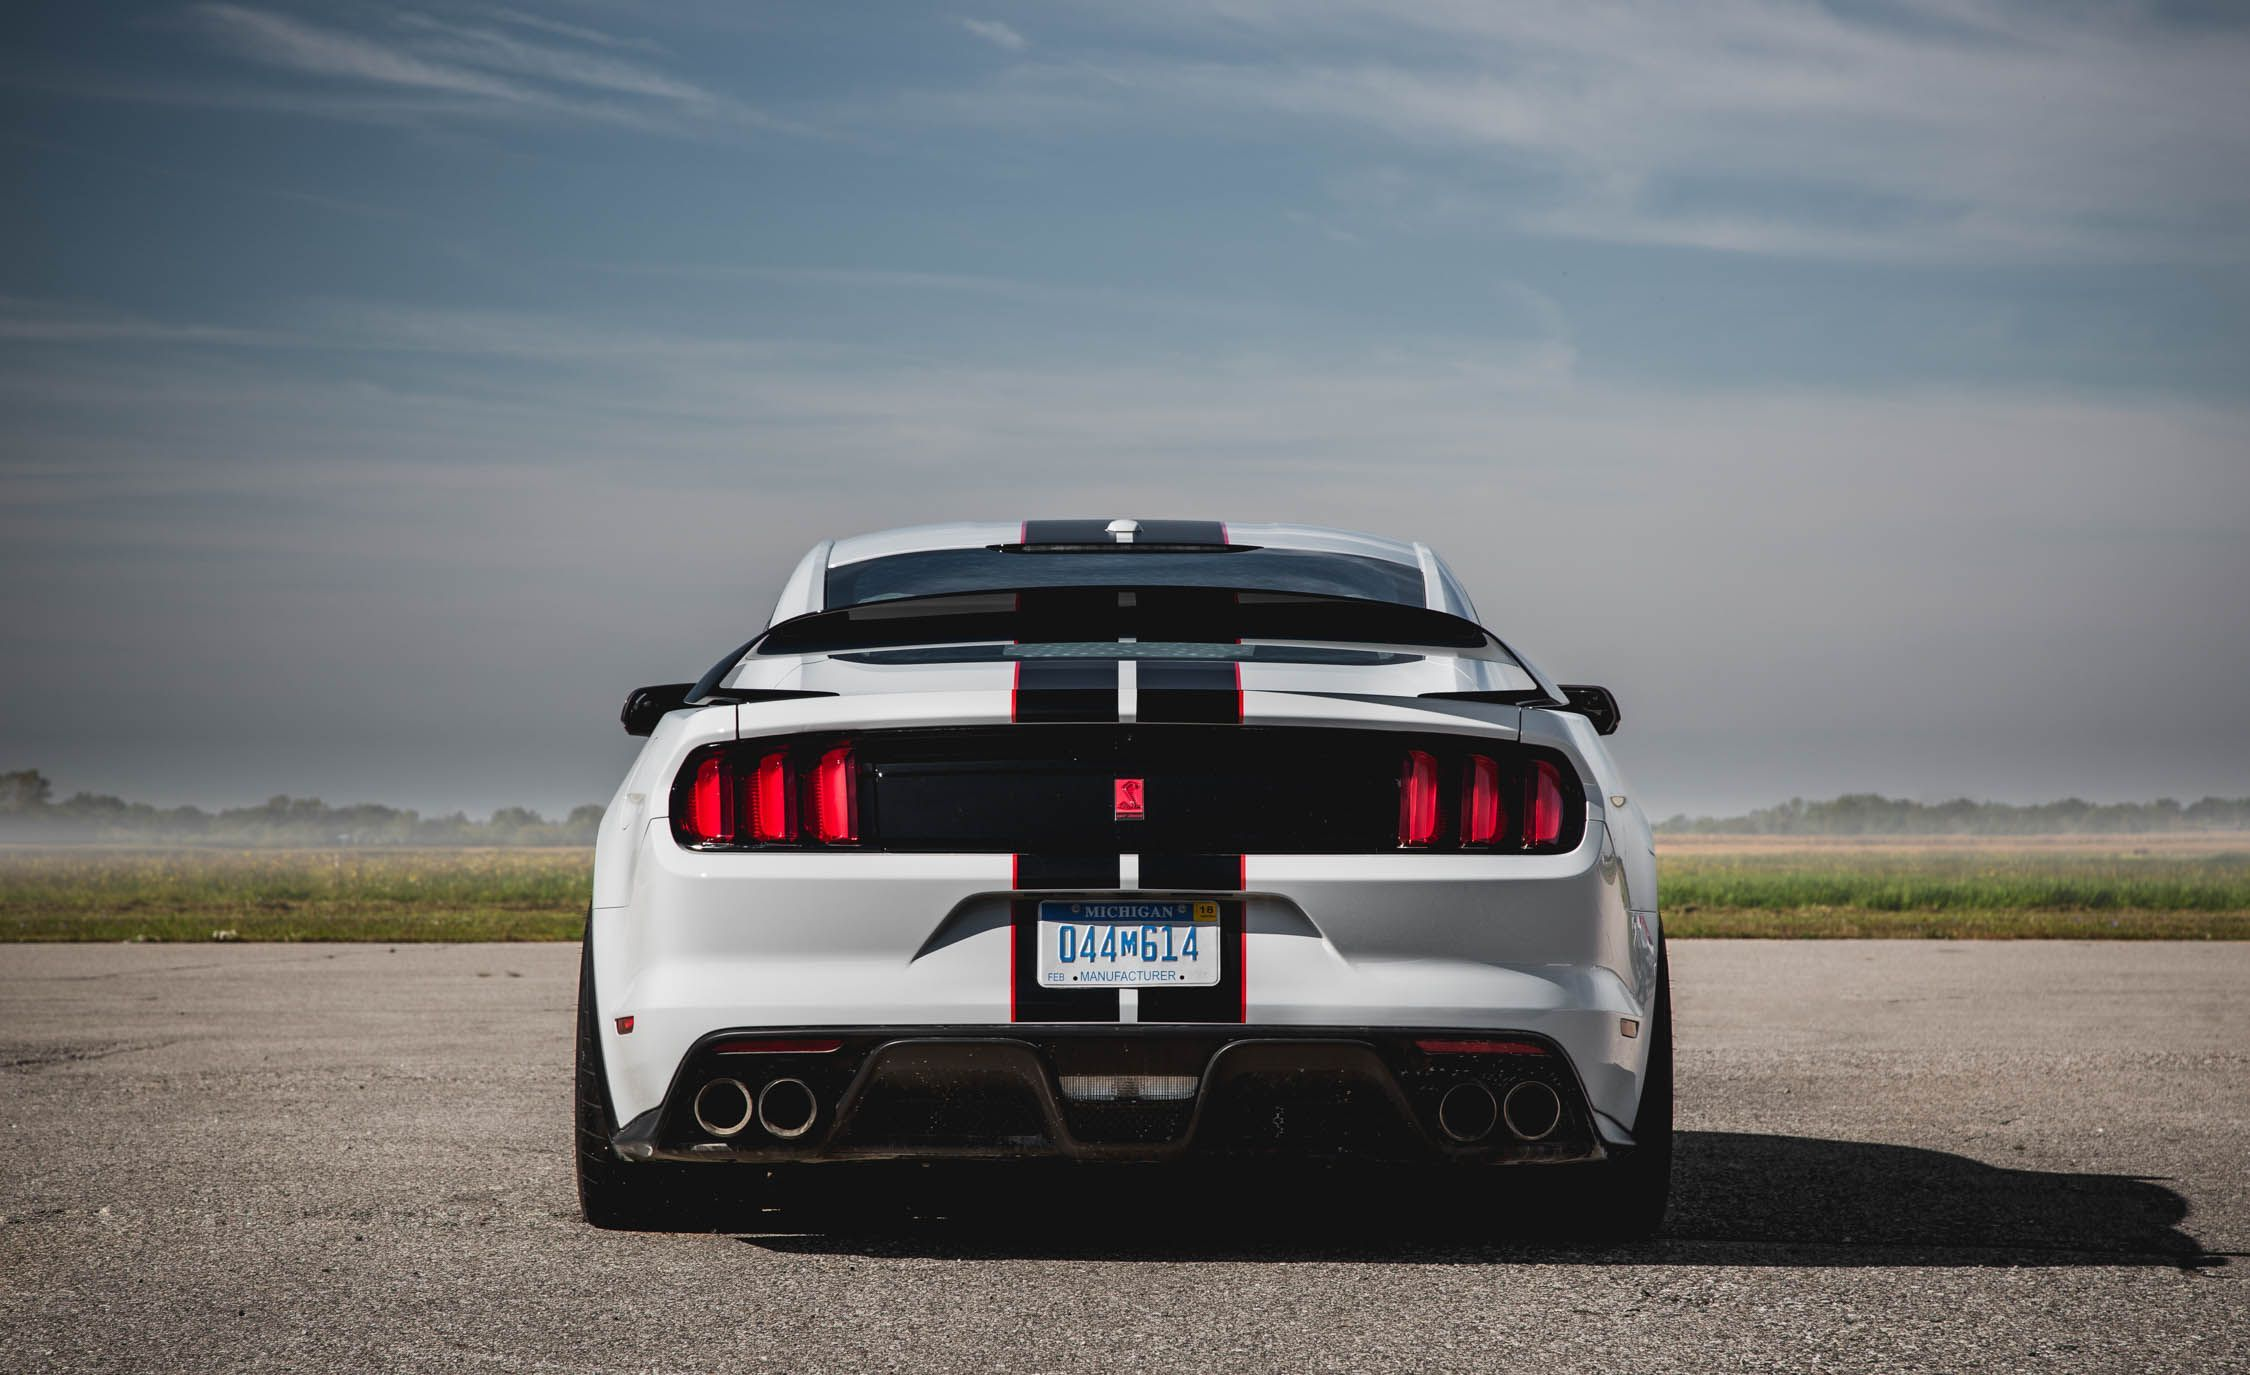 2016 Ford Mustang Shelby Gt350r Exterior Rear View 7858 Cars Performance Reviews And Test Drive Shelby Gt350r Mustang Shelby Ford Mustang Shelby